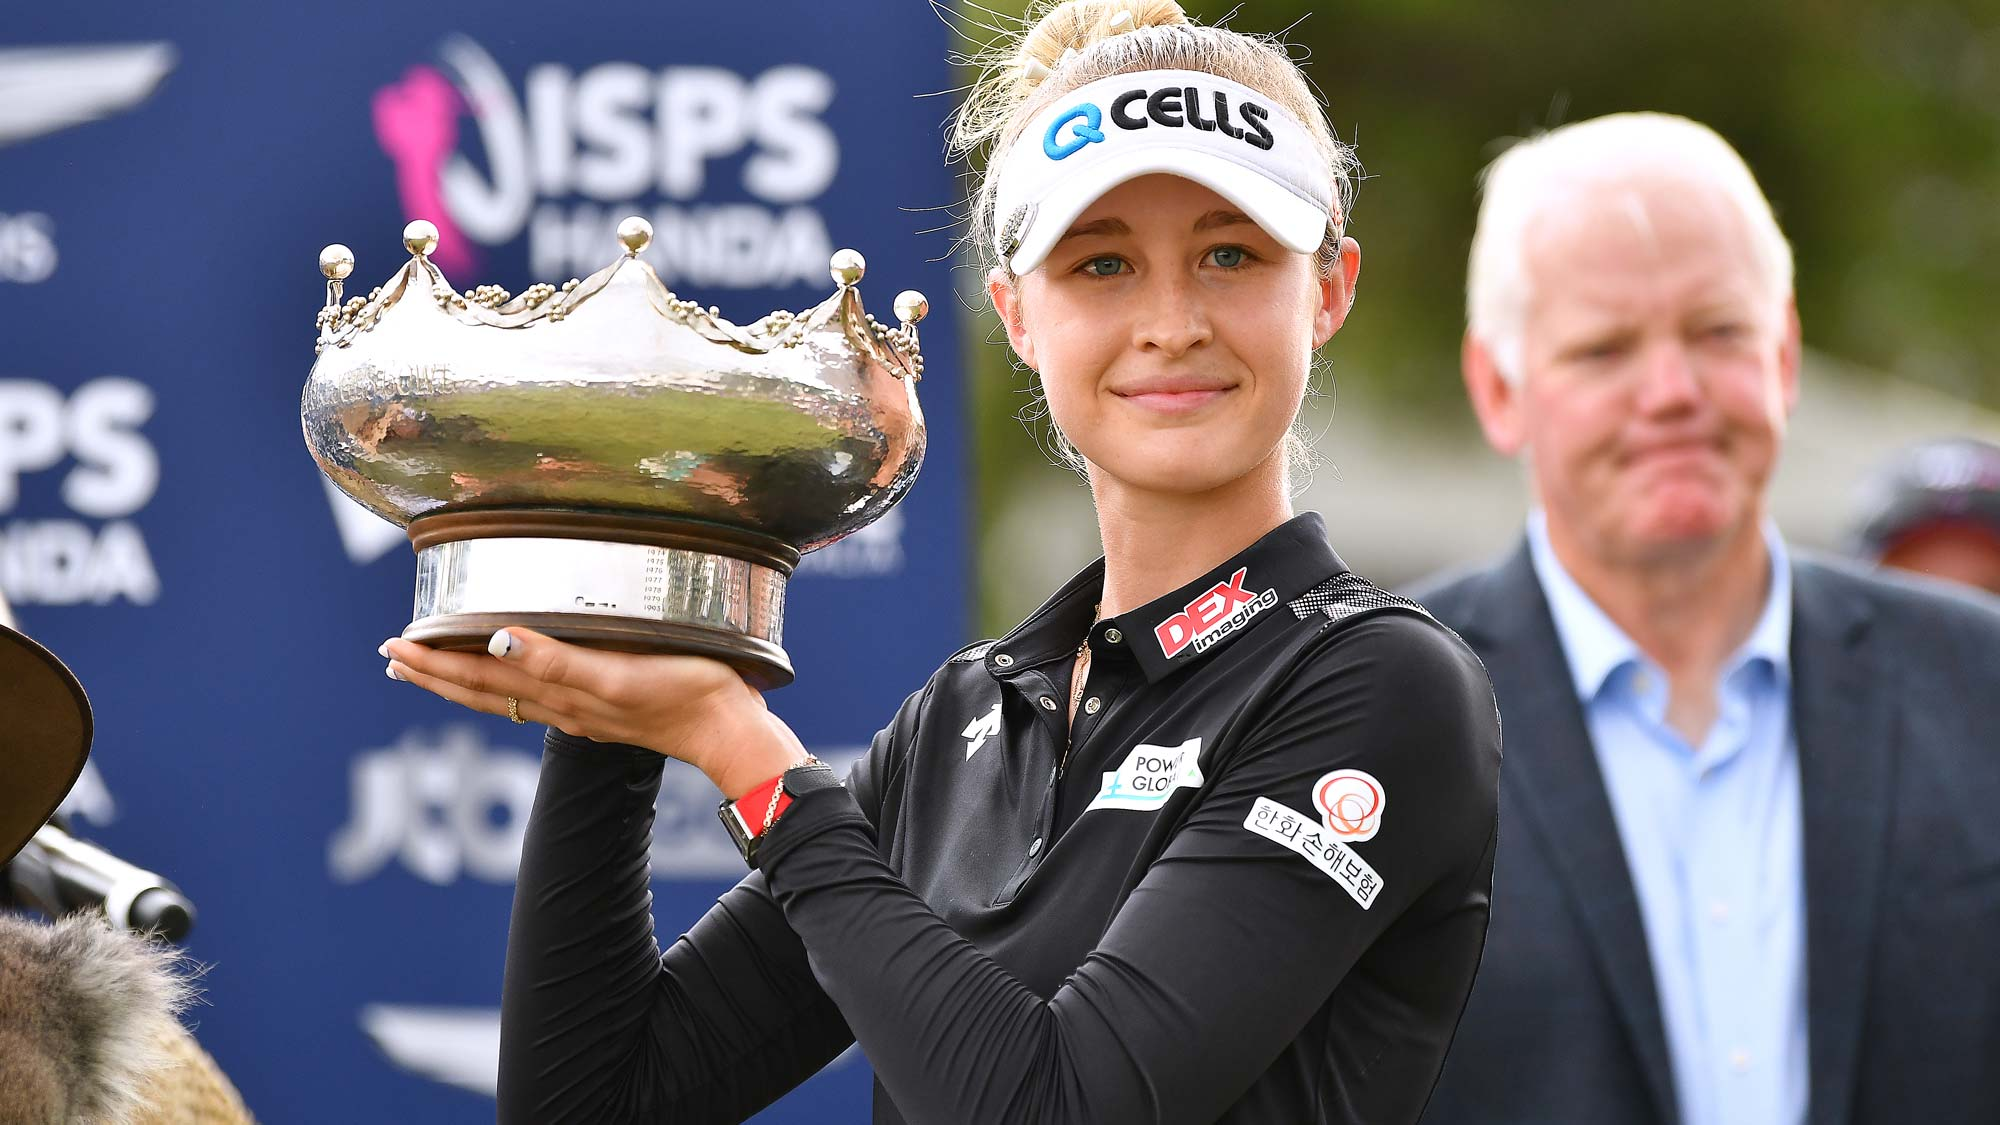 Nelly Korda of the United States poses with the trophy during day four of the 2019 ISPS Handa Women's Australian Open